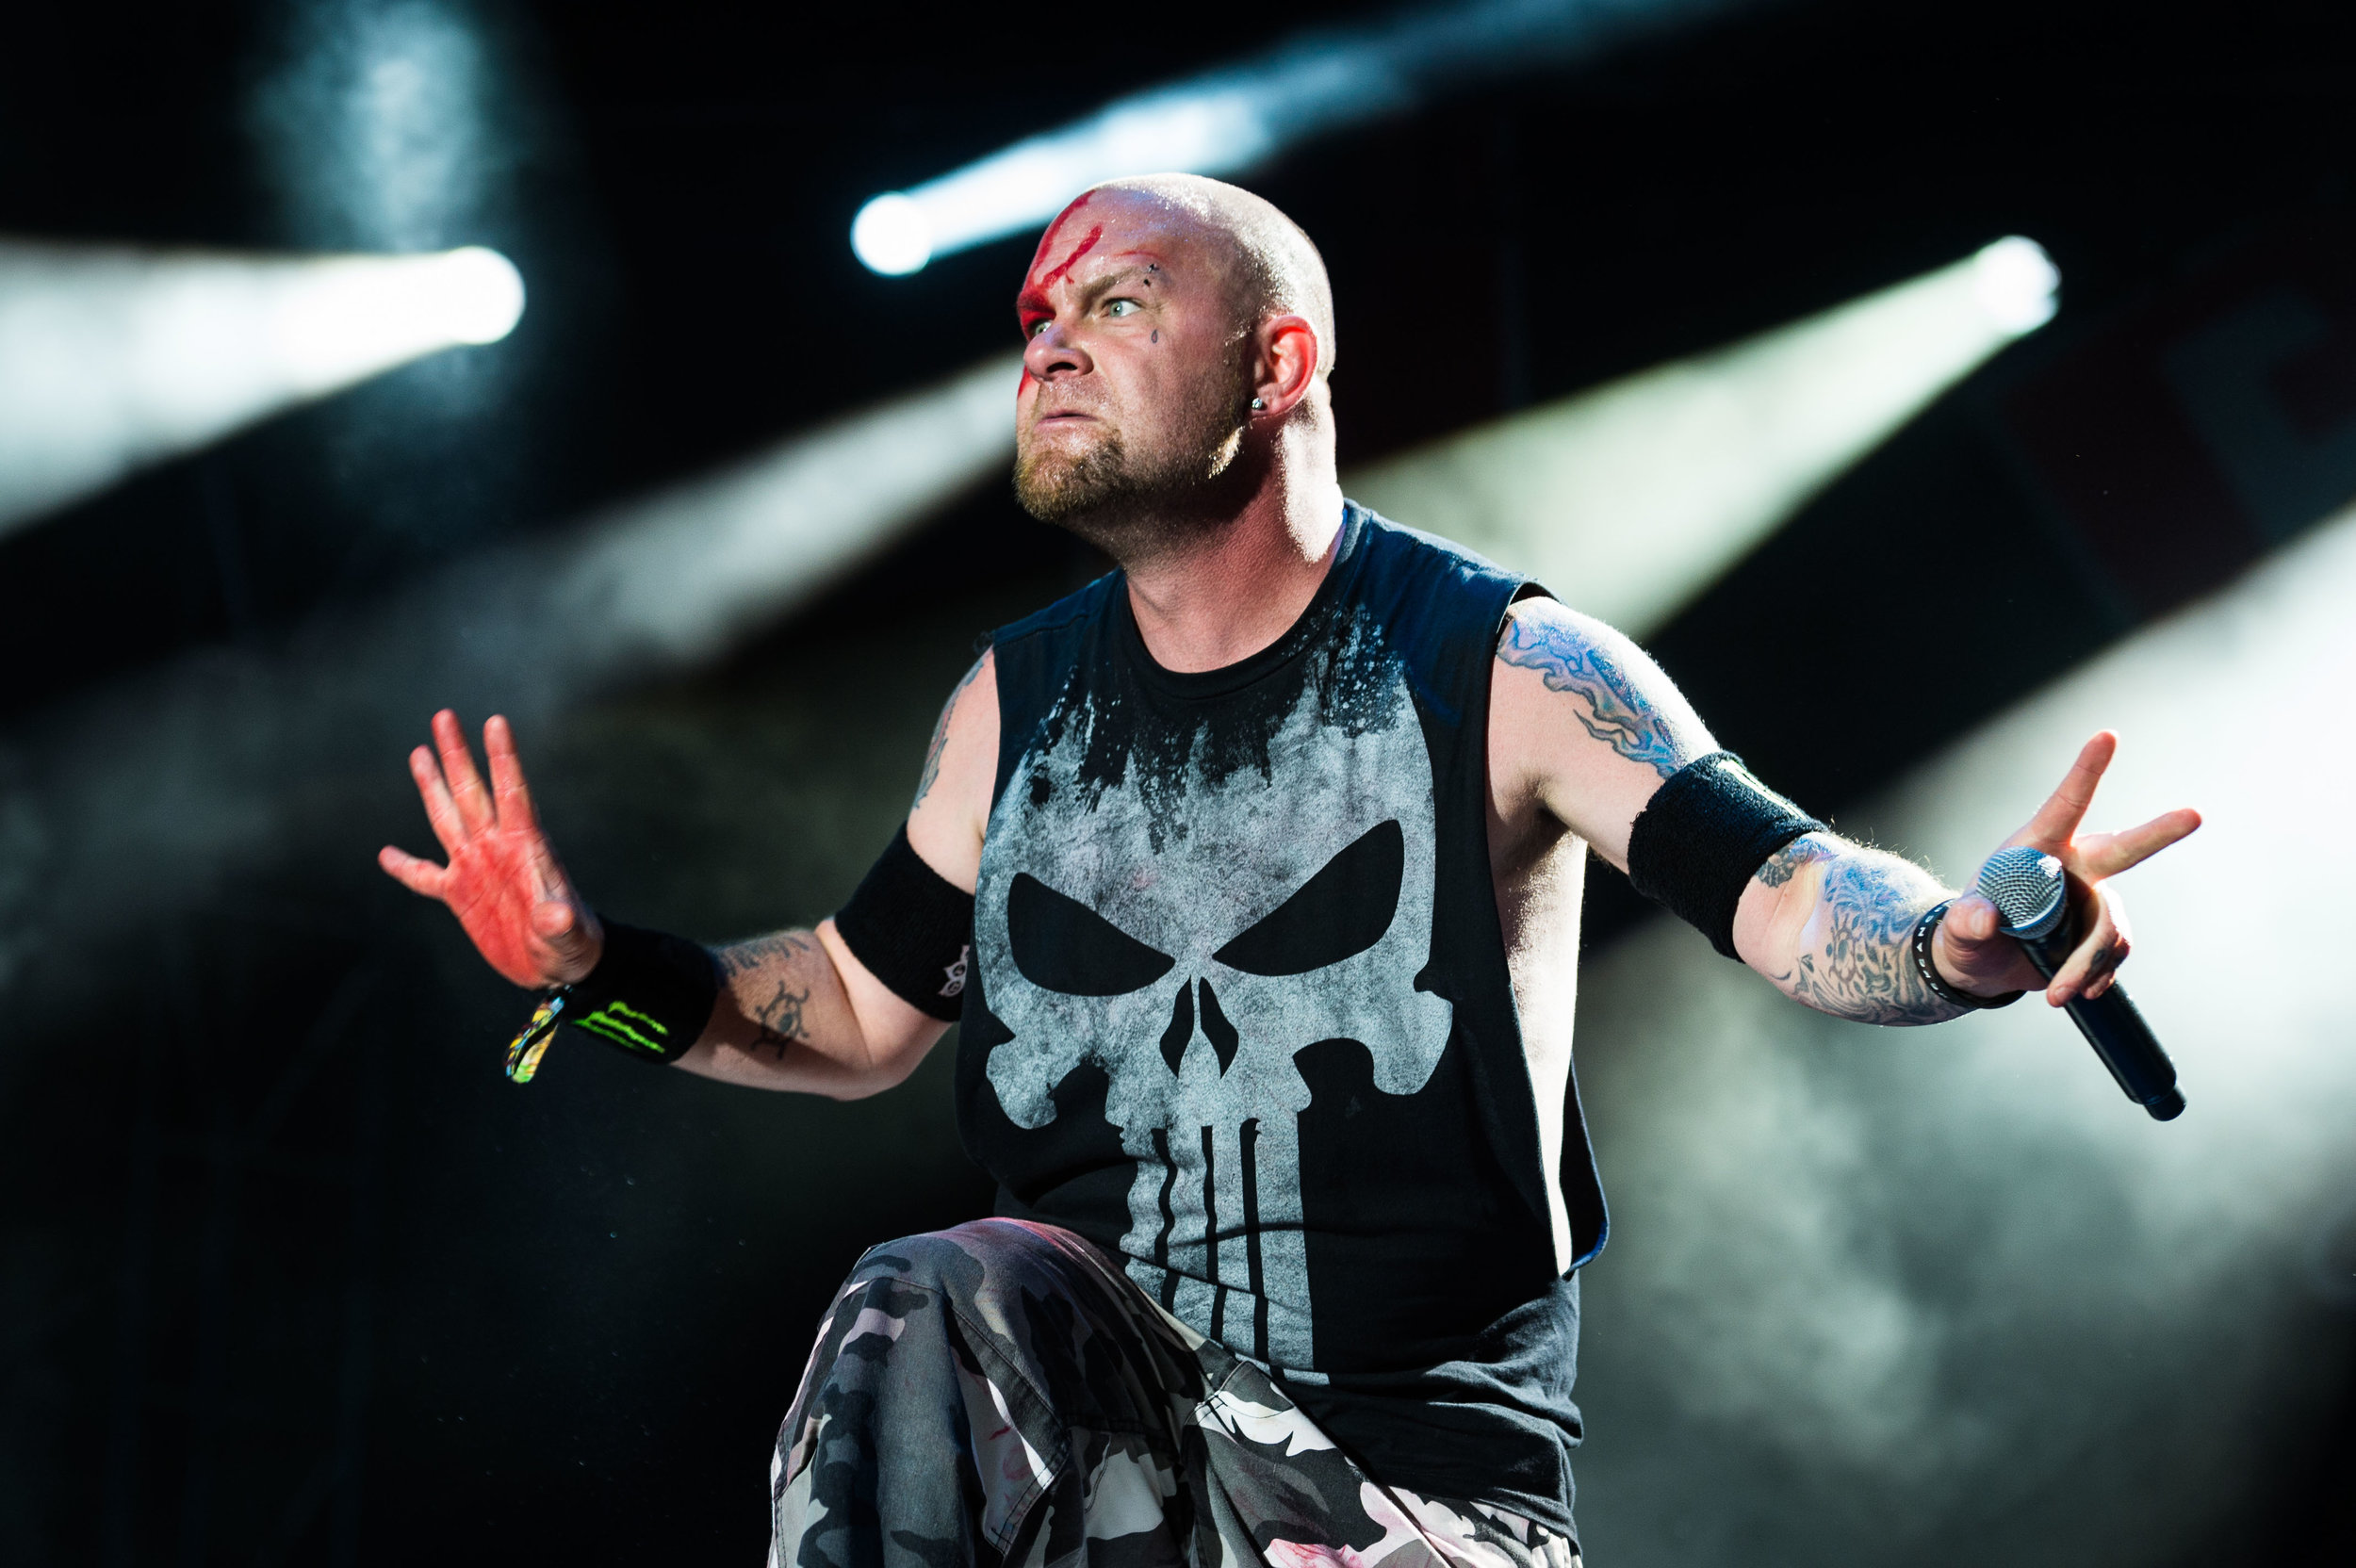 Five Finger Death Punch Sep 30 2017-36.jpg